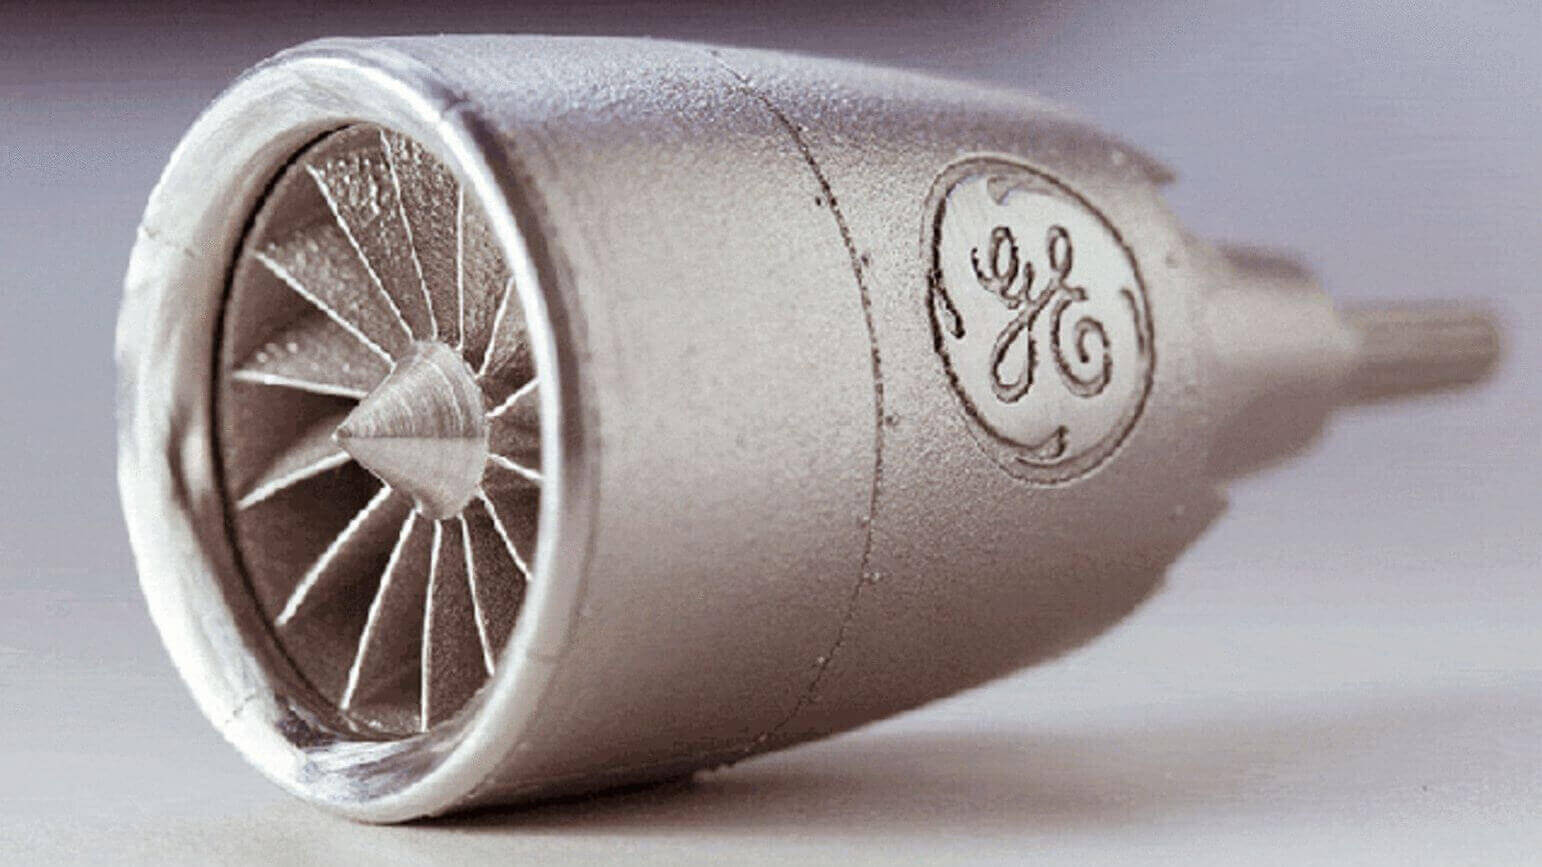 GE Invests $1.4 Billion in Metal 3D Printing Jet Engines | All3DP